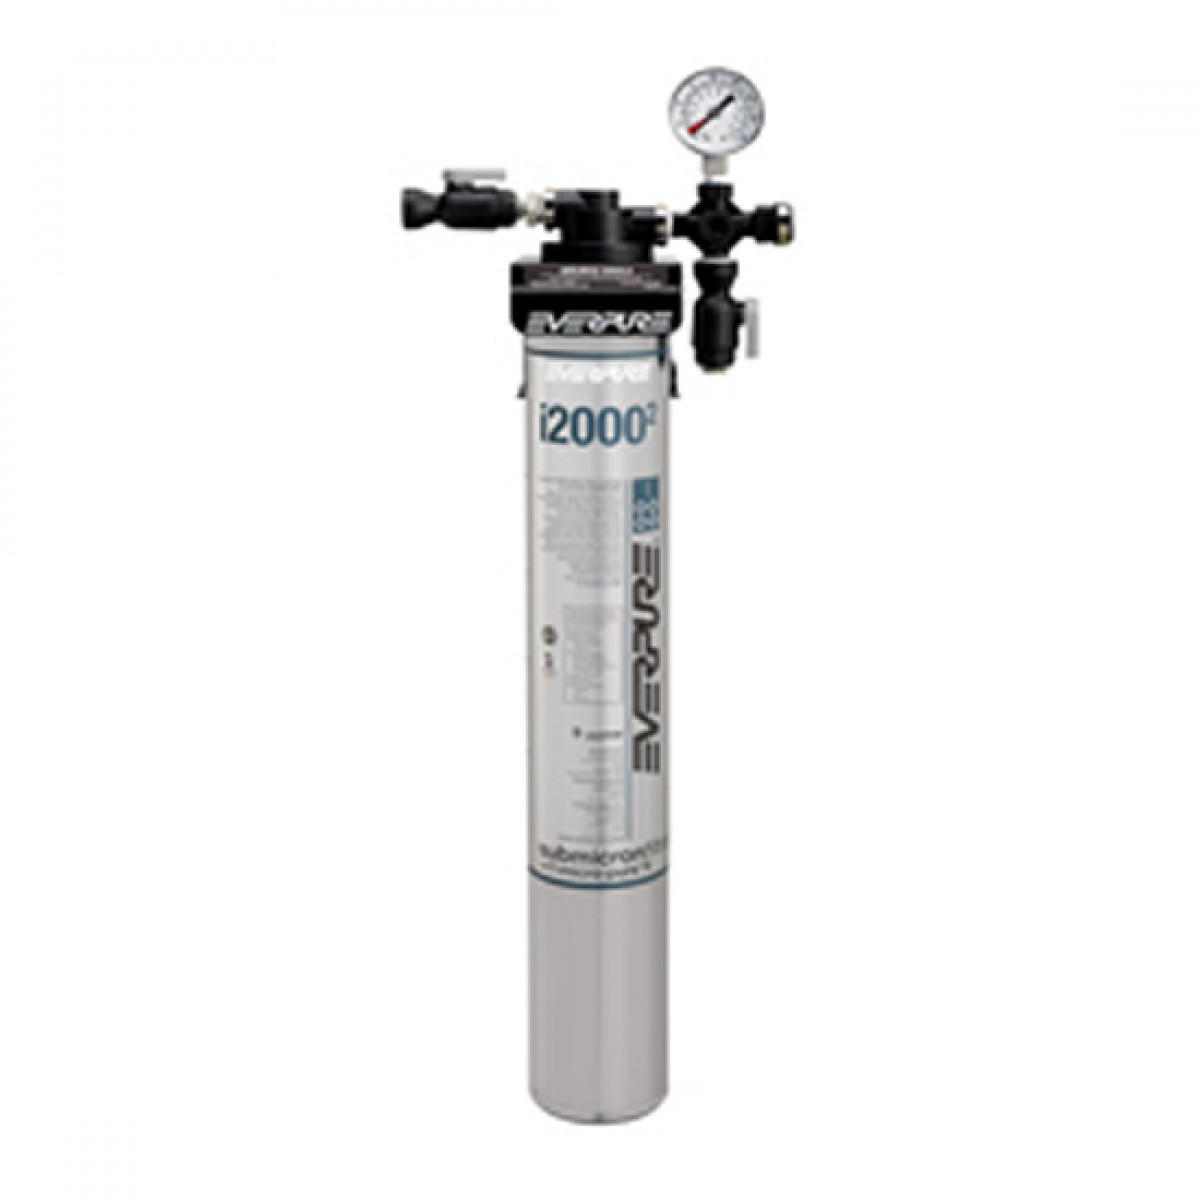 Ev9324 01 Everpure Ice Machine Water Filter System